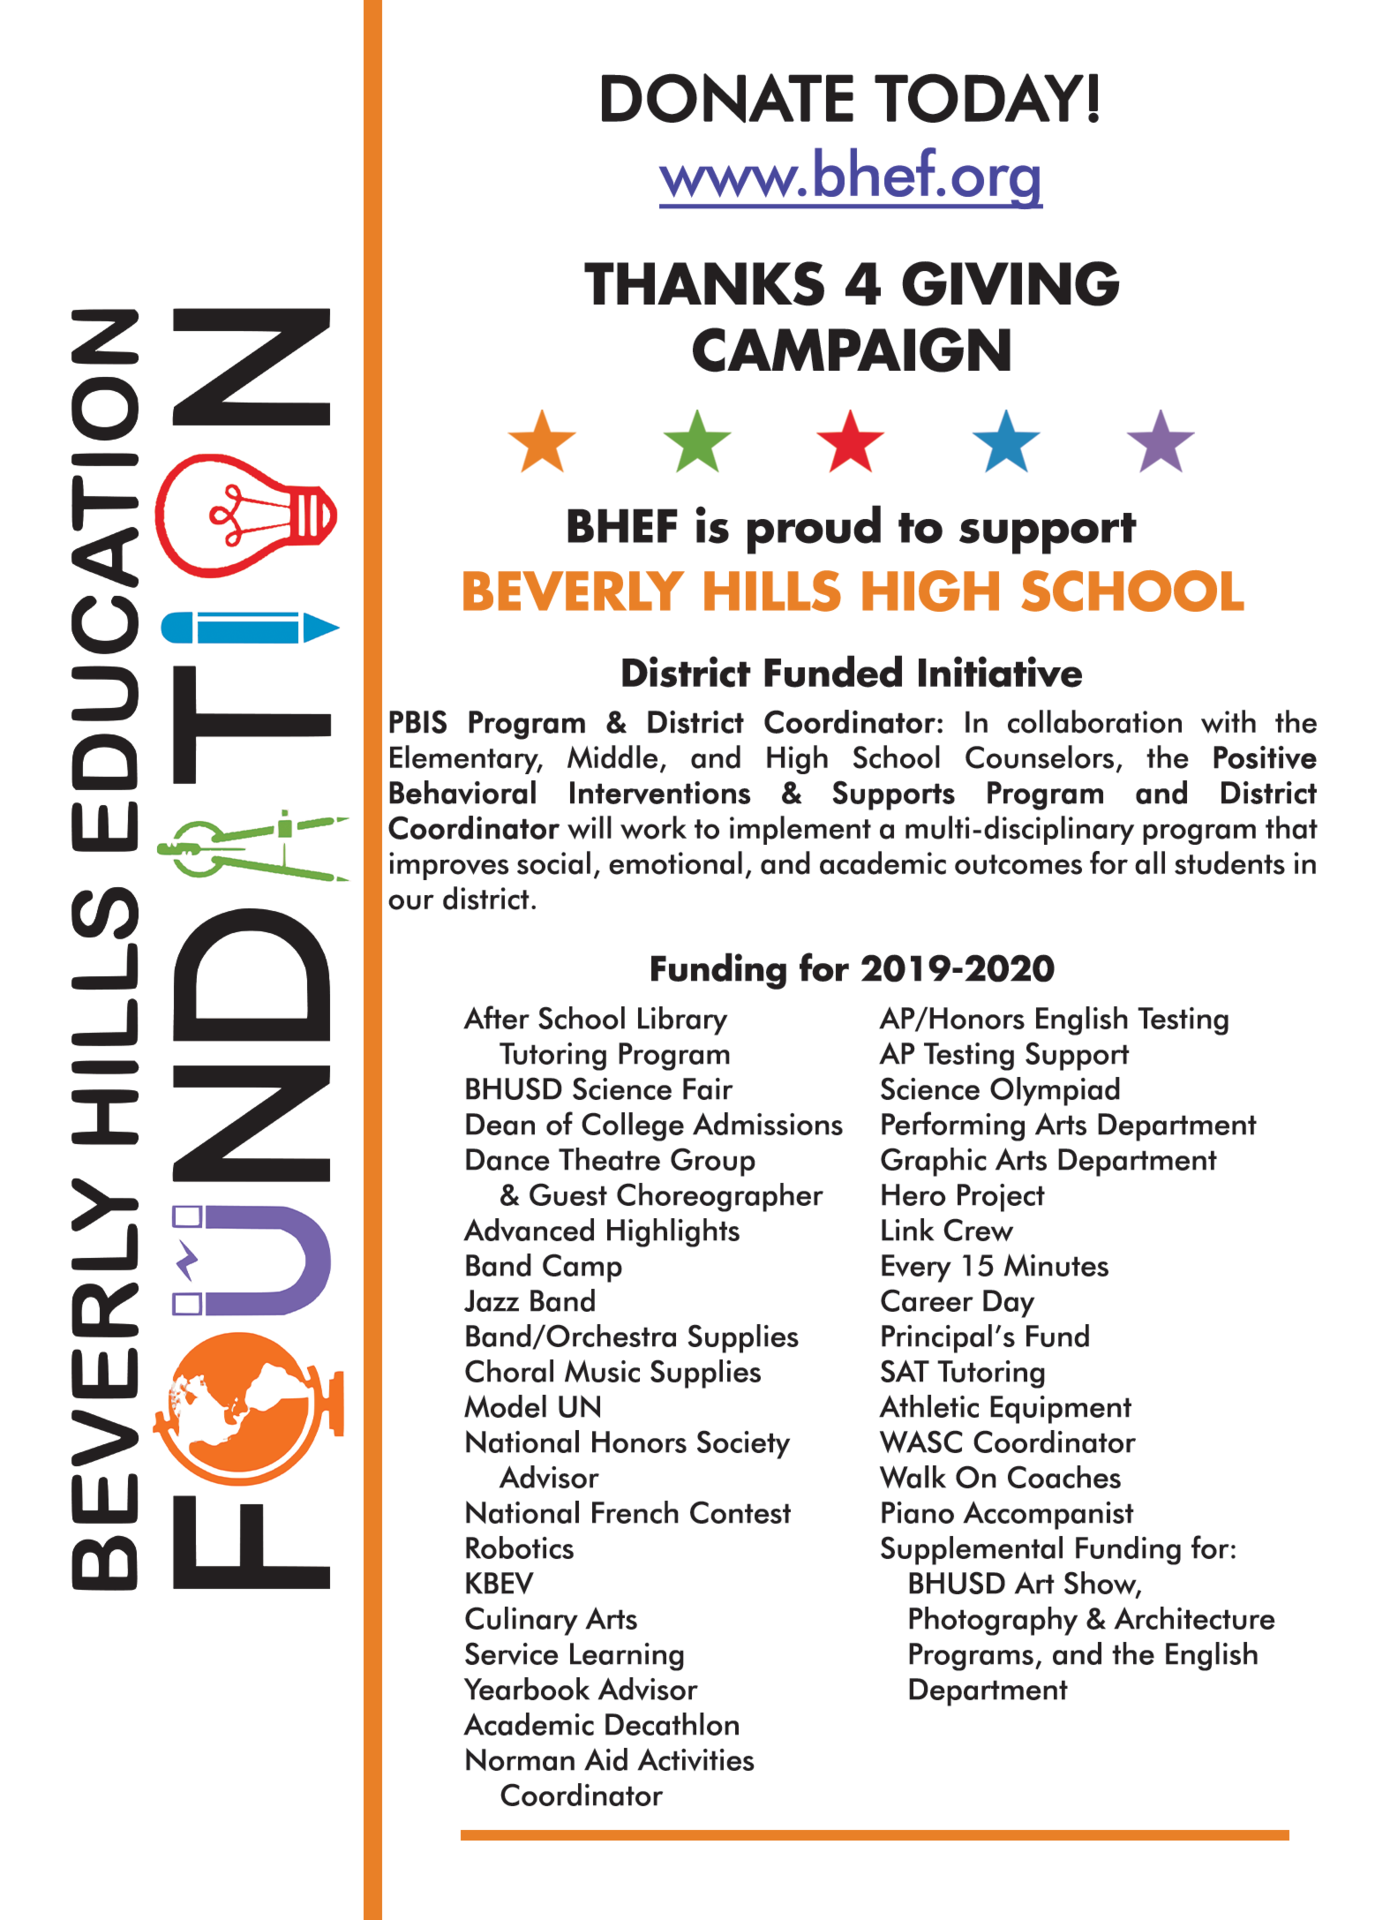 bhhs funded programs 2019